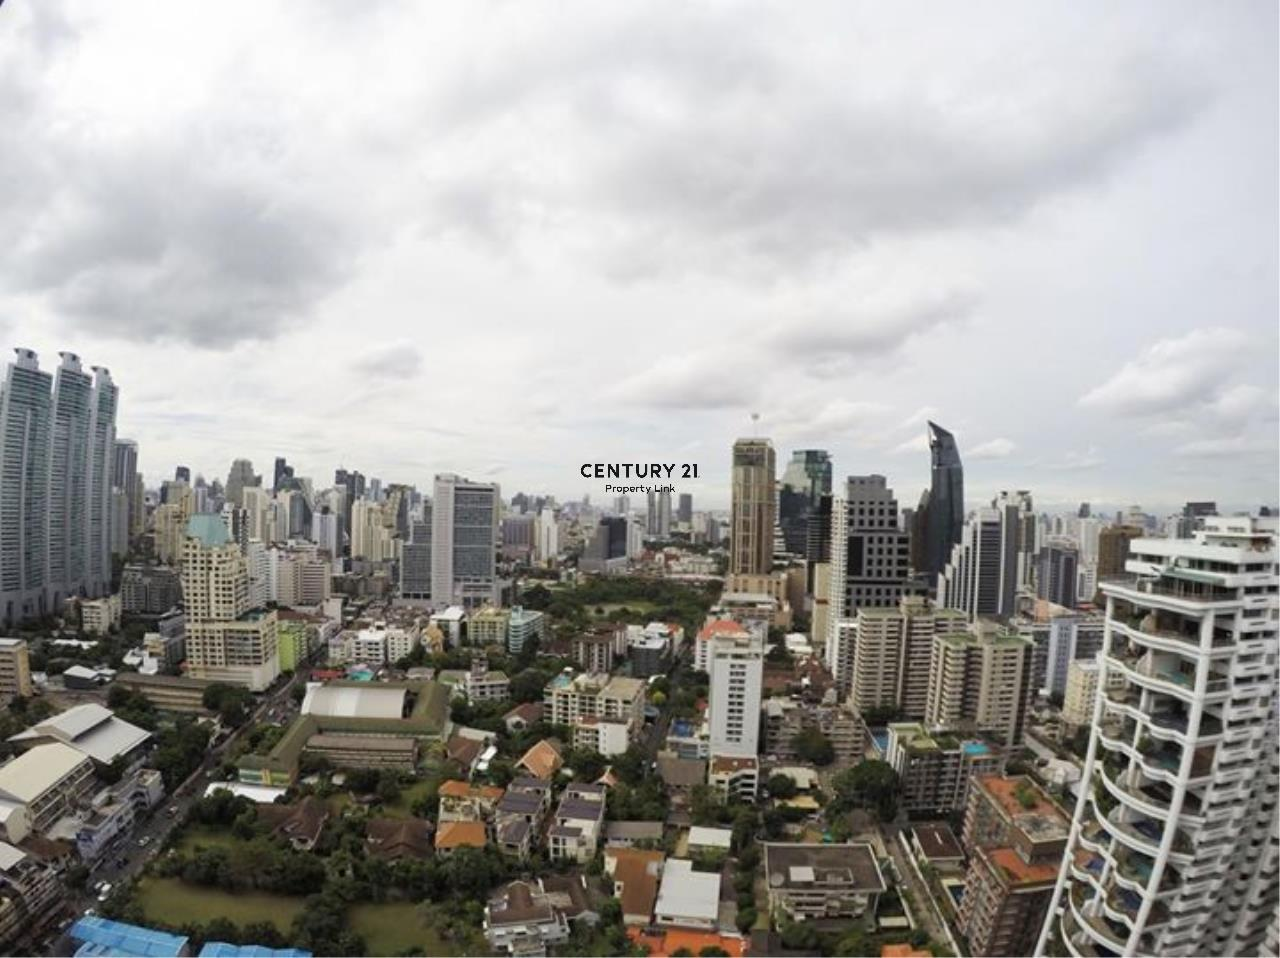 Century21 Property Link Agency's 39-CC-61514 Park 24 Room For Sale/ Rent 1 Bedroom Plus Near BTS Phrom Phong Sale price 15.45MB./ 28,000THB/ month 8